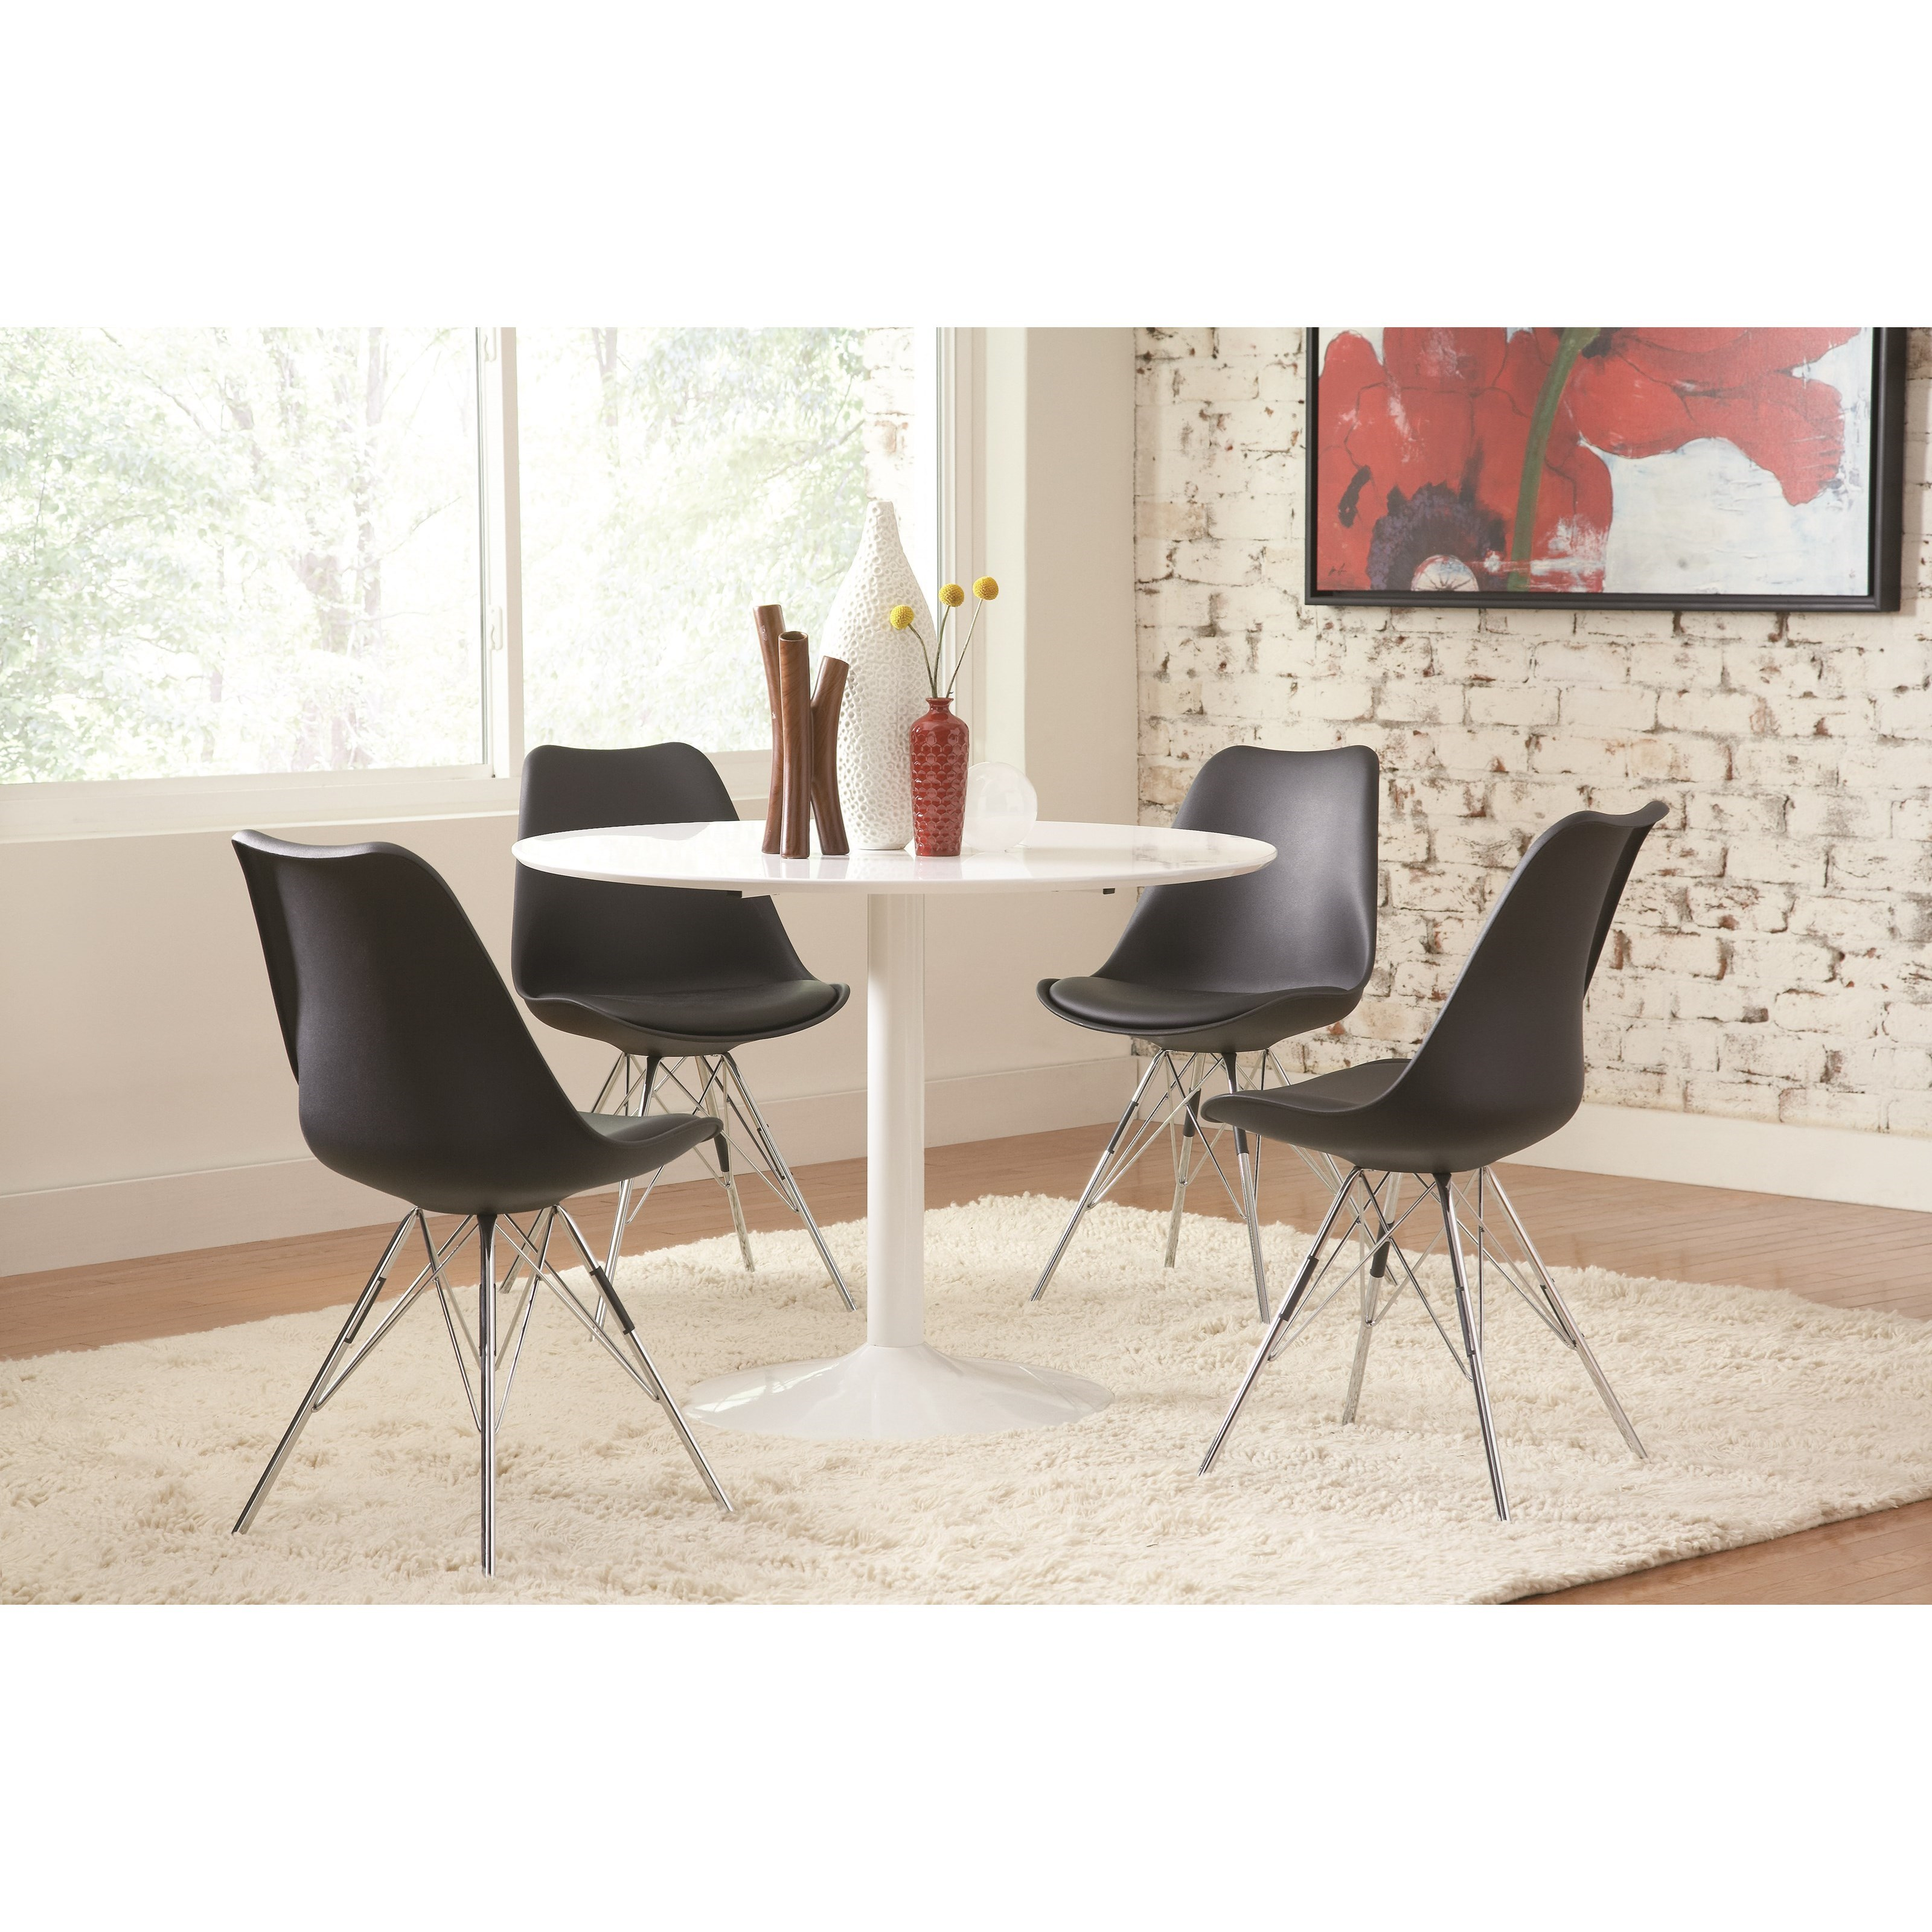 Lowry Table and Chair Set by Coaster at Northeast Factory Direct